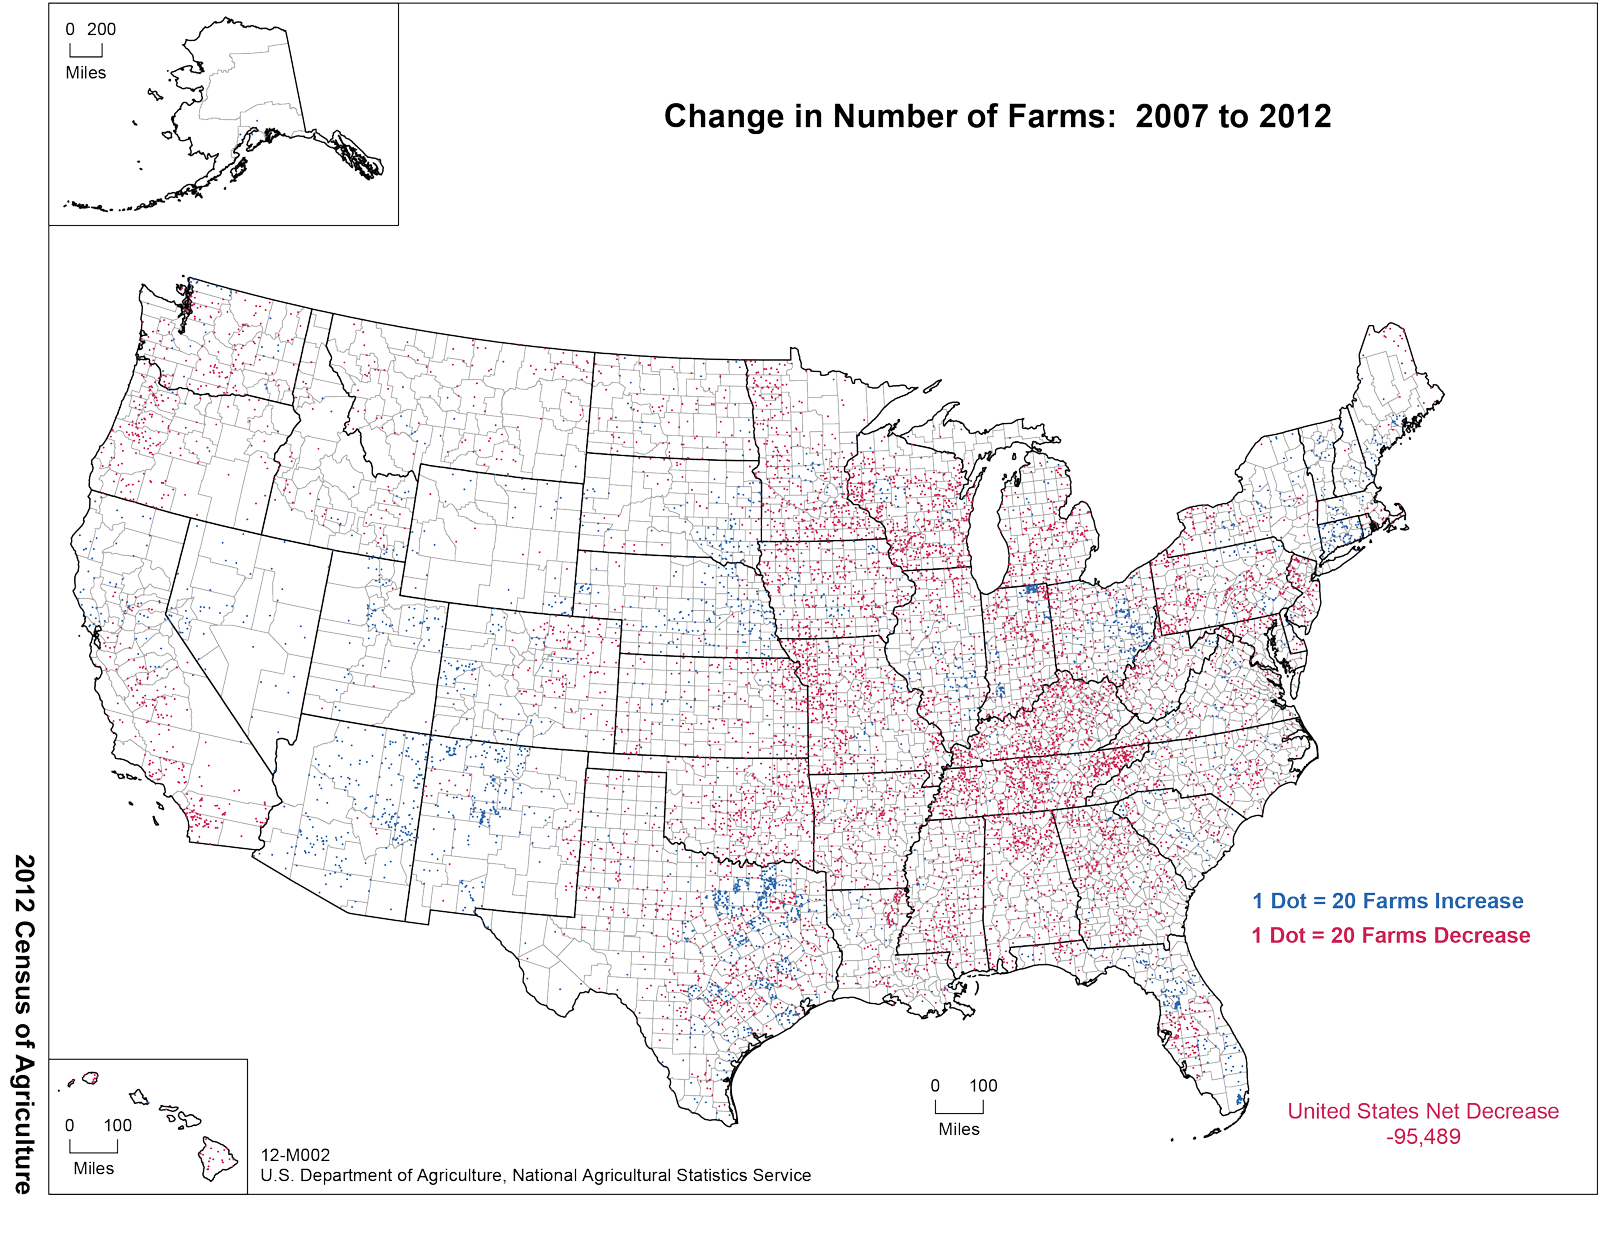 Change in the number of US farms from 2007 to 2012